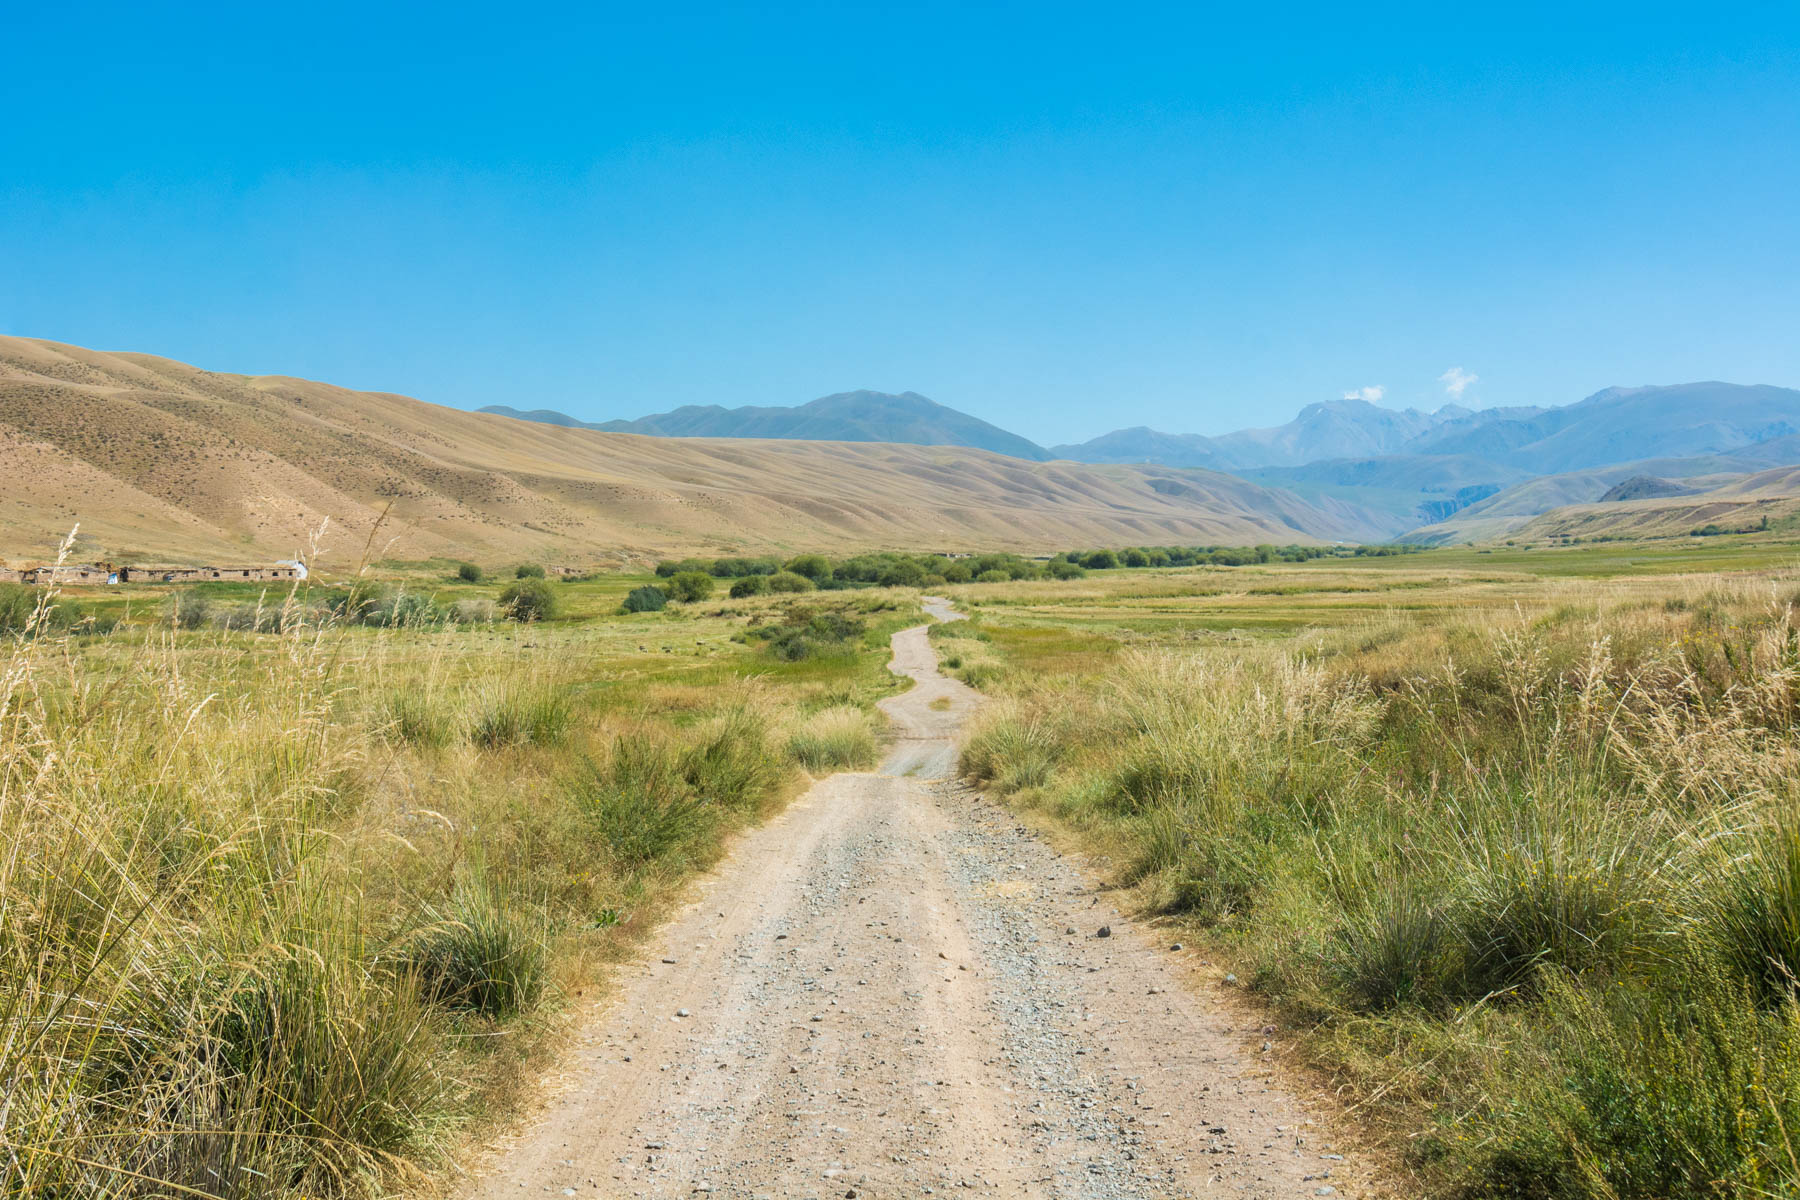 On the road to Song Kul lake in Kyrgyzstan - Lost With Purpose